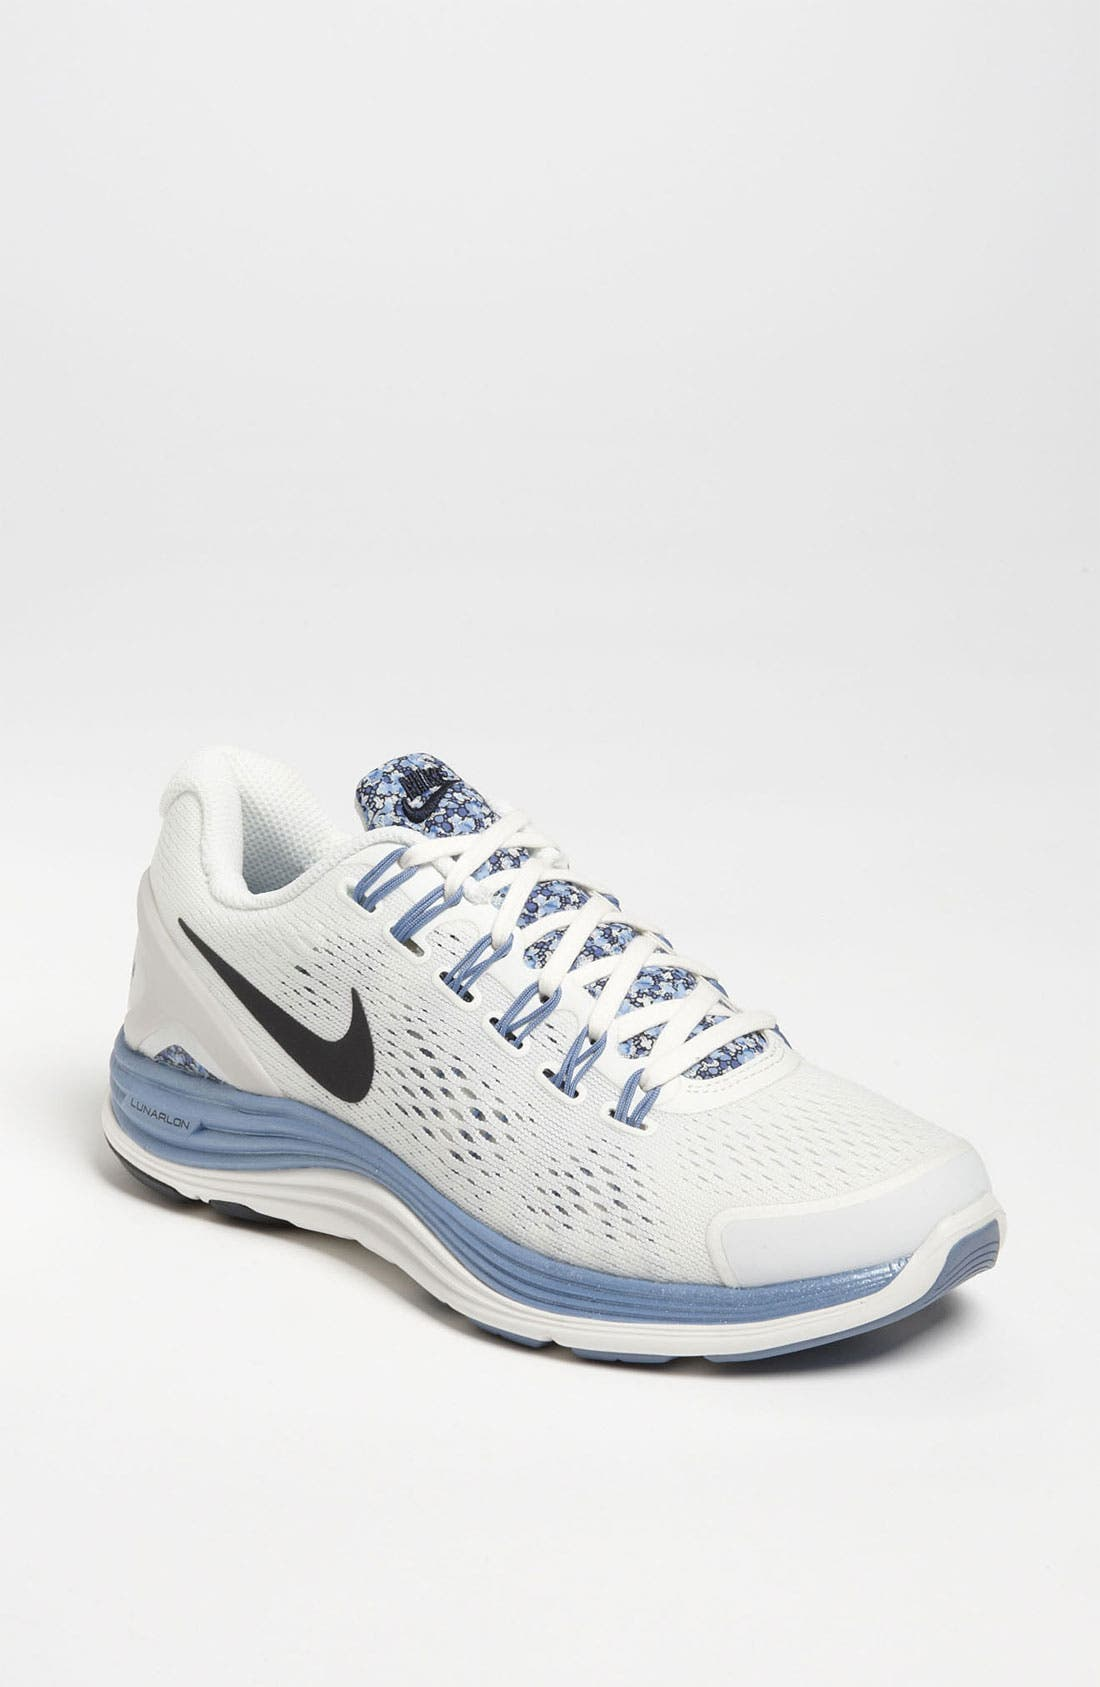 Alternate Image 1 Selected - Nike 'LunarGlide+ 4 Liberty' Sneaker (Women)